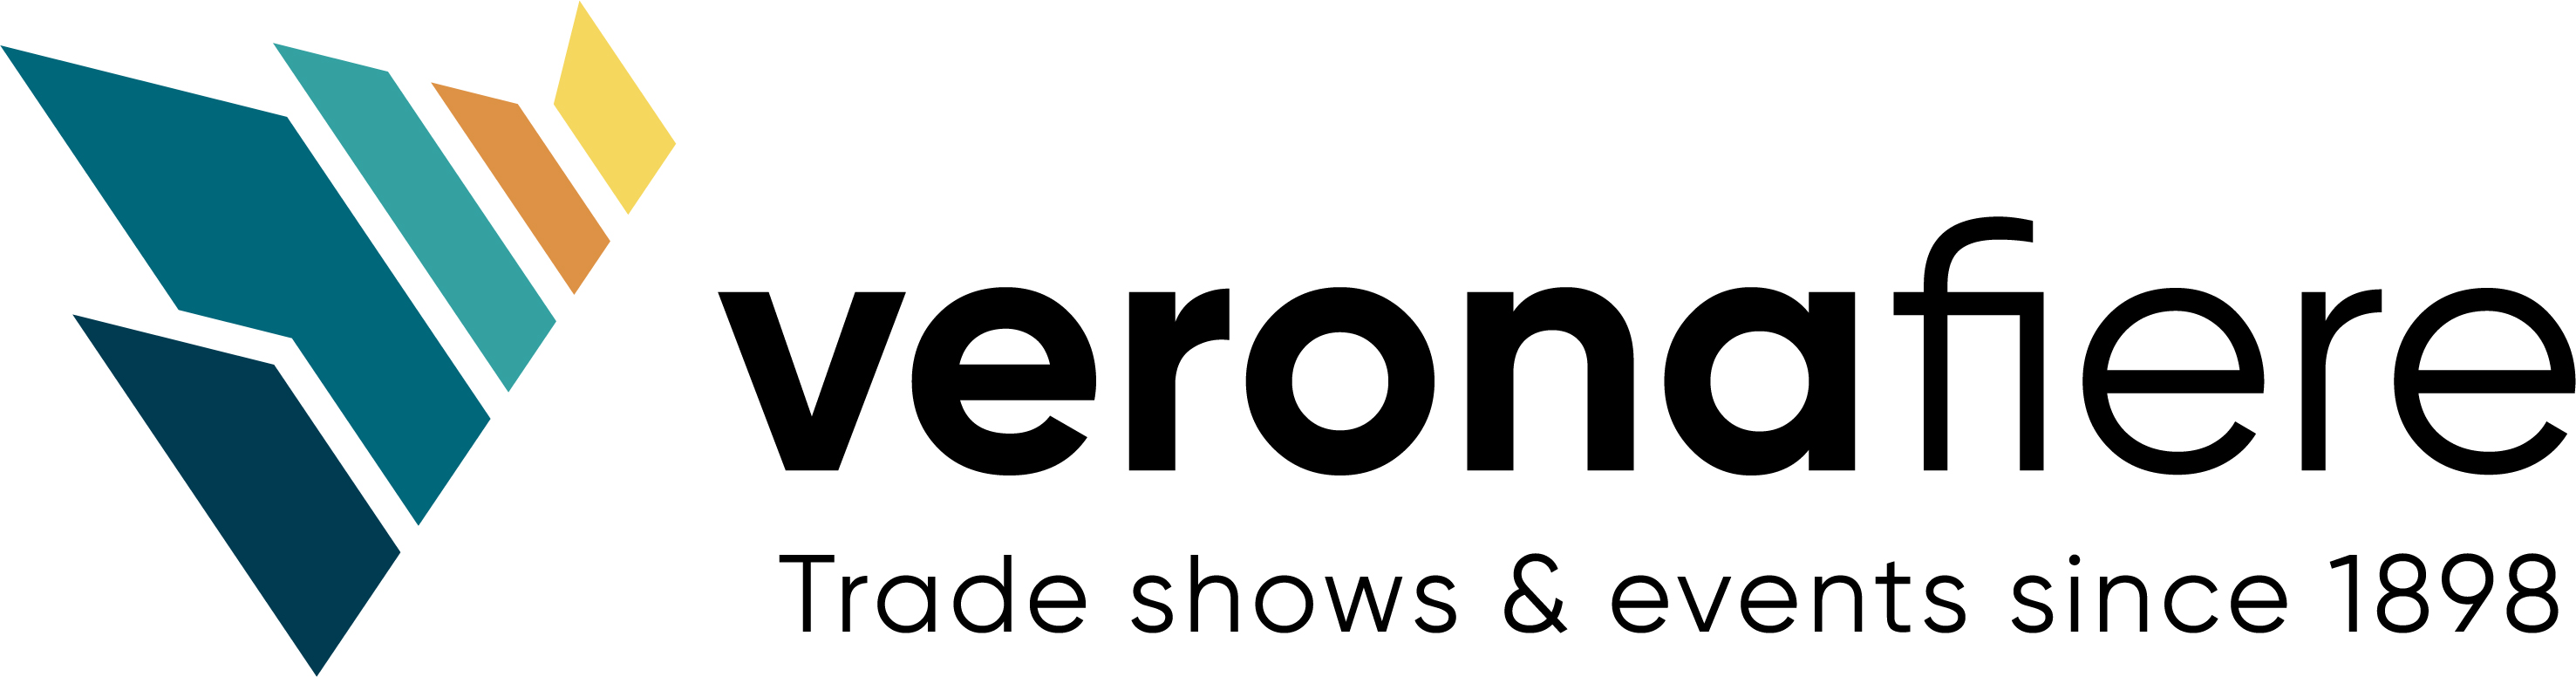 Veronafiere - Trade shows & events since 1898